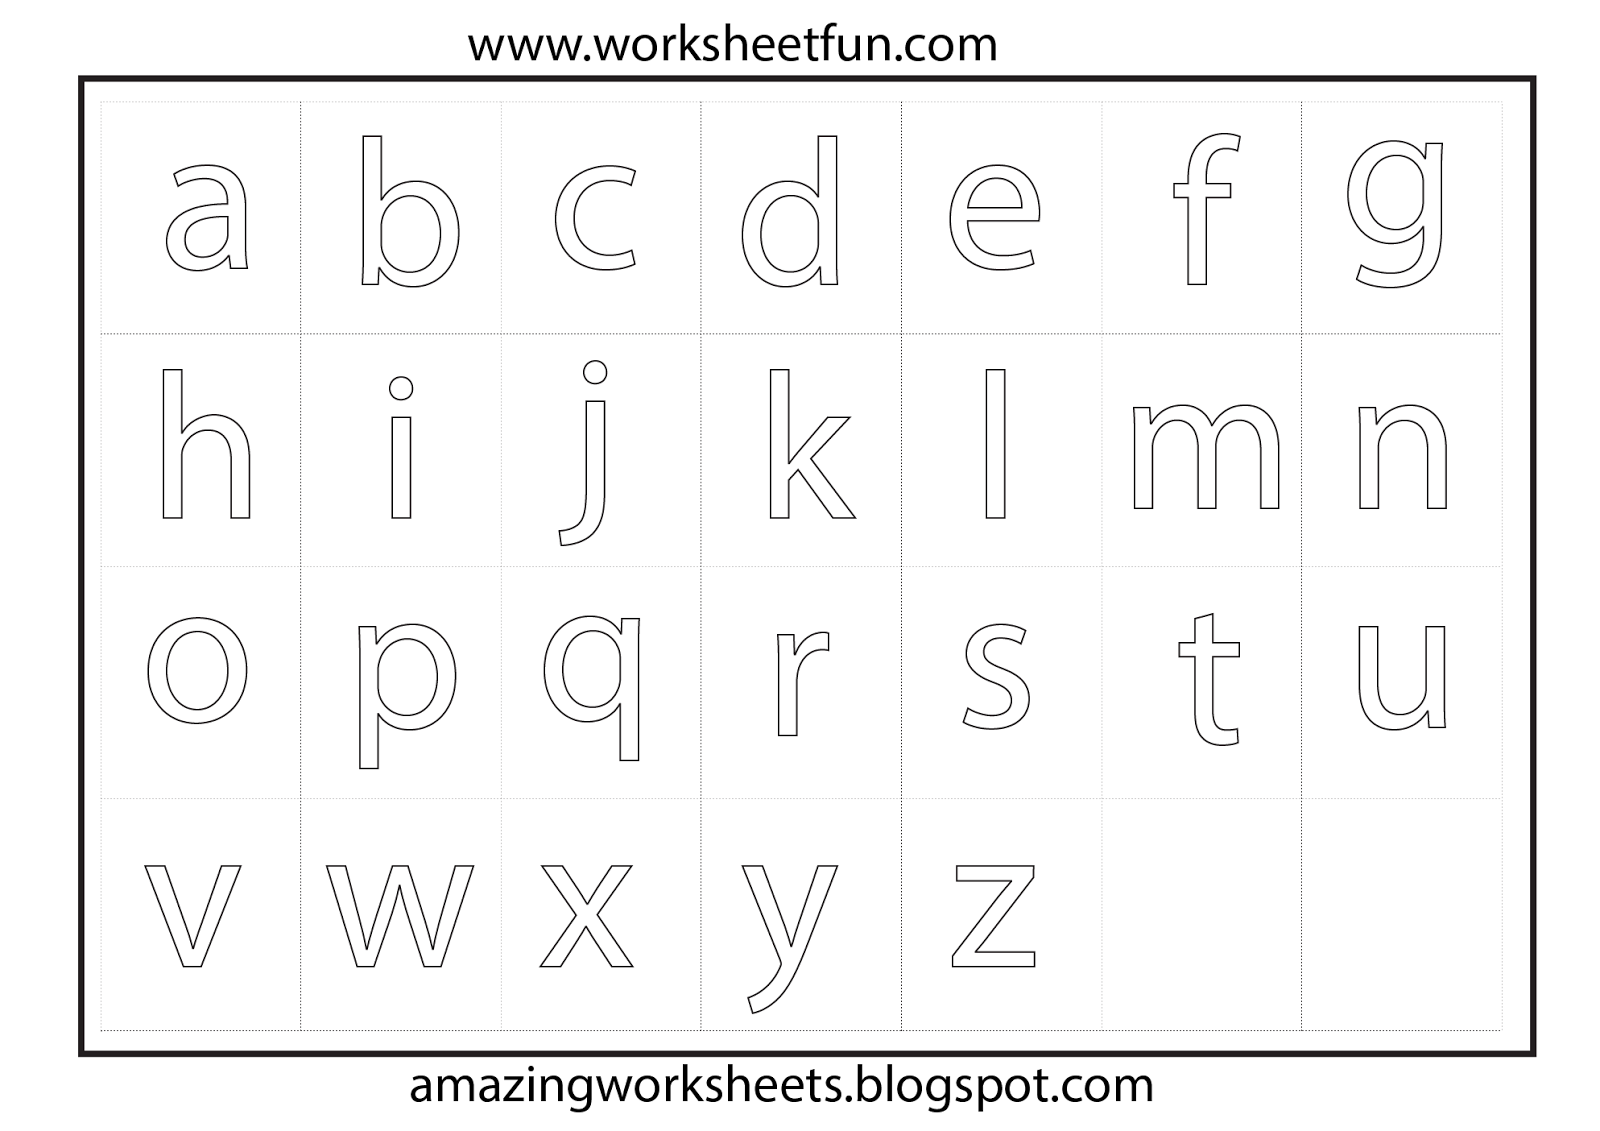 ... Worksheets A-z printable alphabet worksheets a z versaldobip